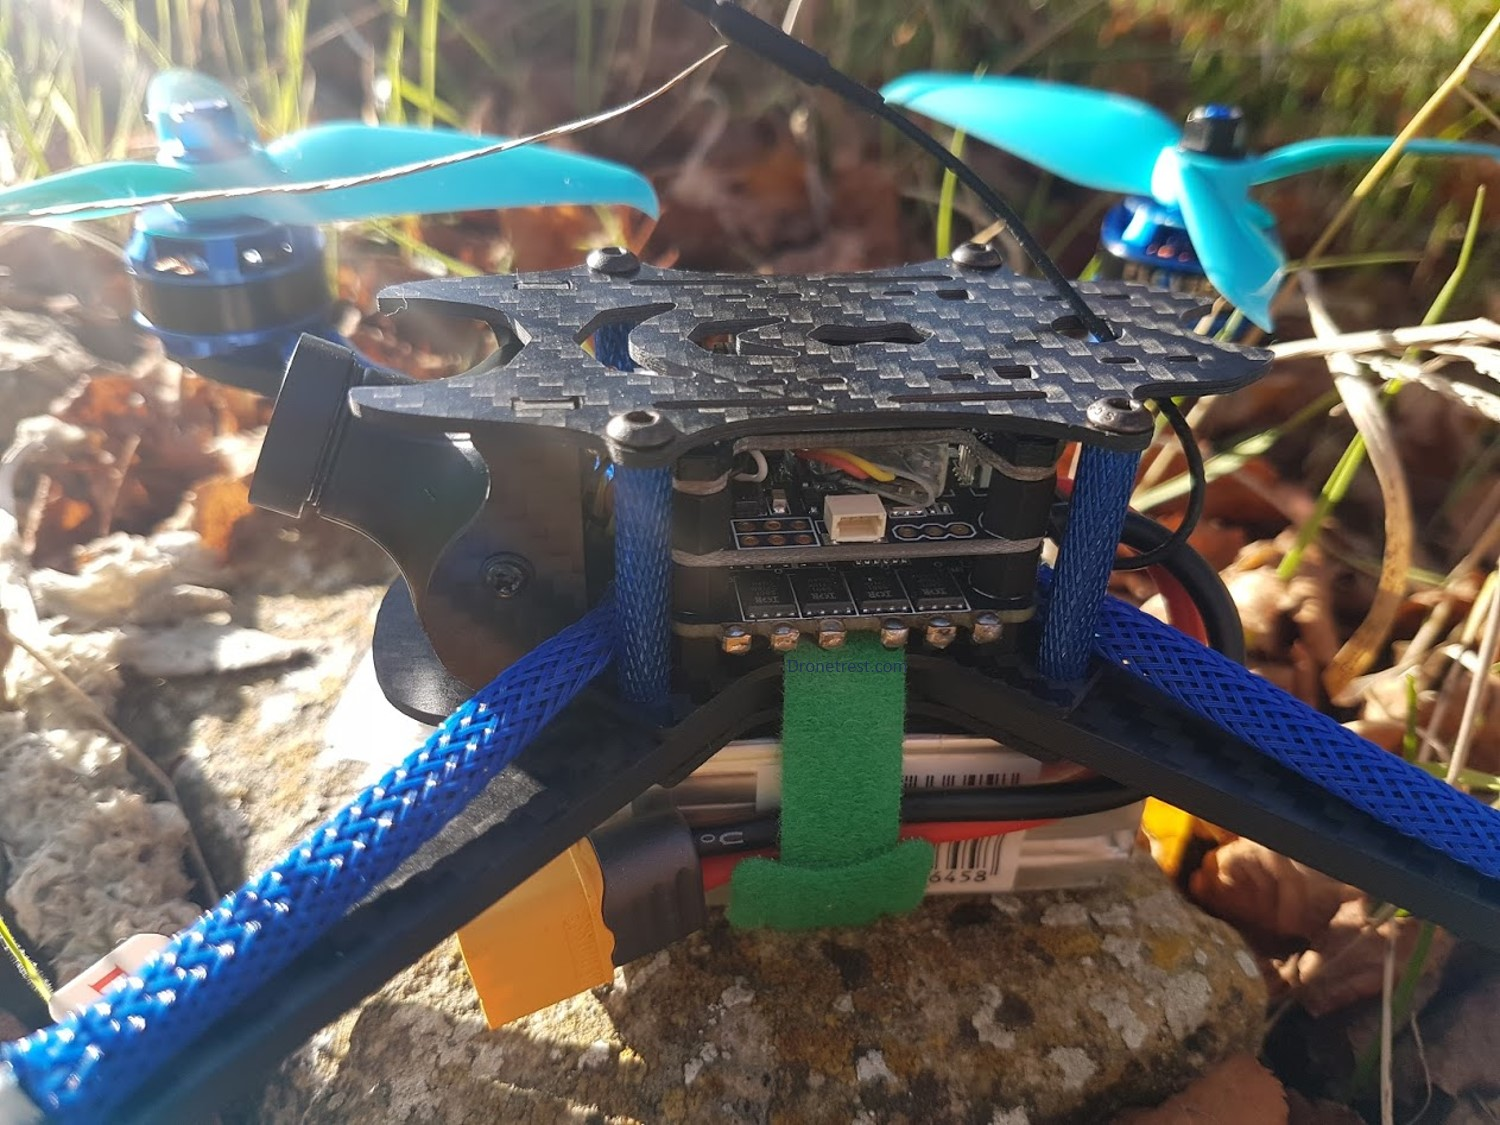 Bflight210-fpv-quadcopter-stack